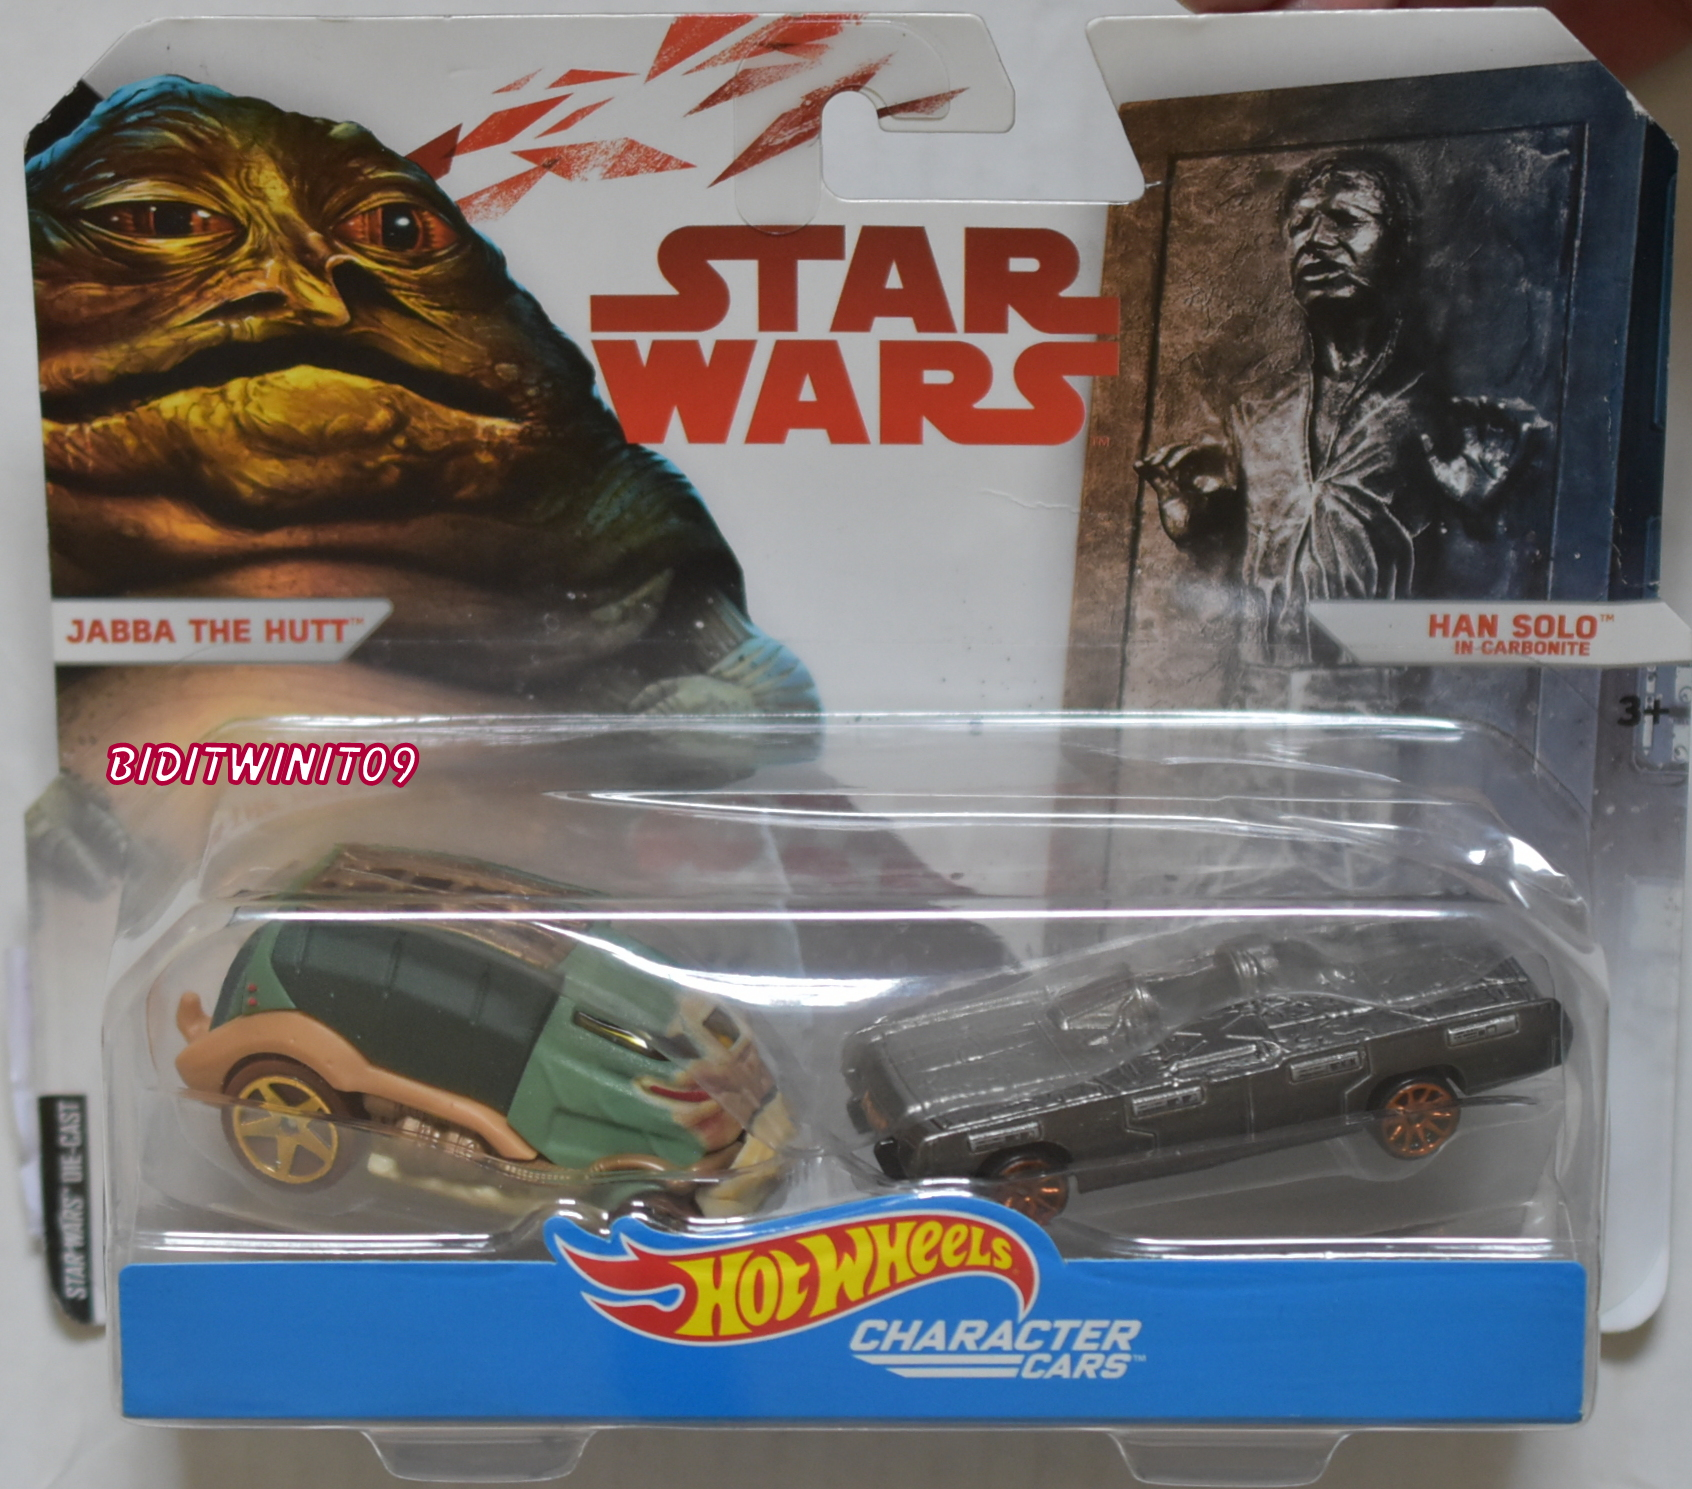 HOT WHEELS STAR WARS 2 CAR PACK JABBA THE HUTT - HAN SOLO IN CARBONITE